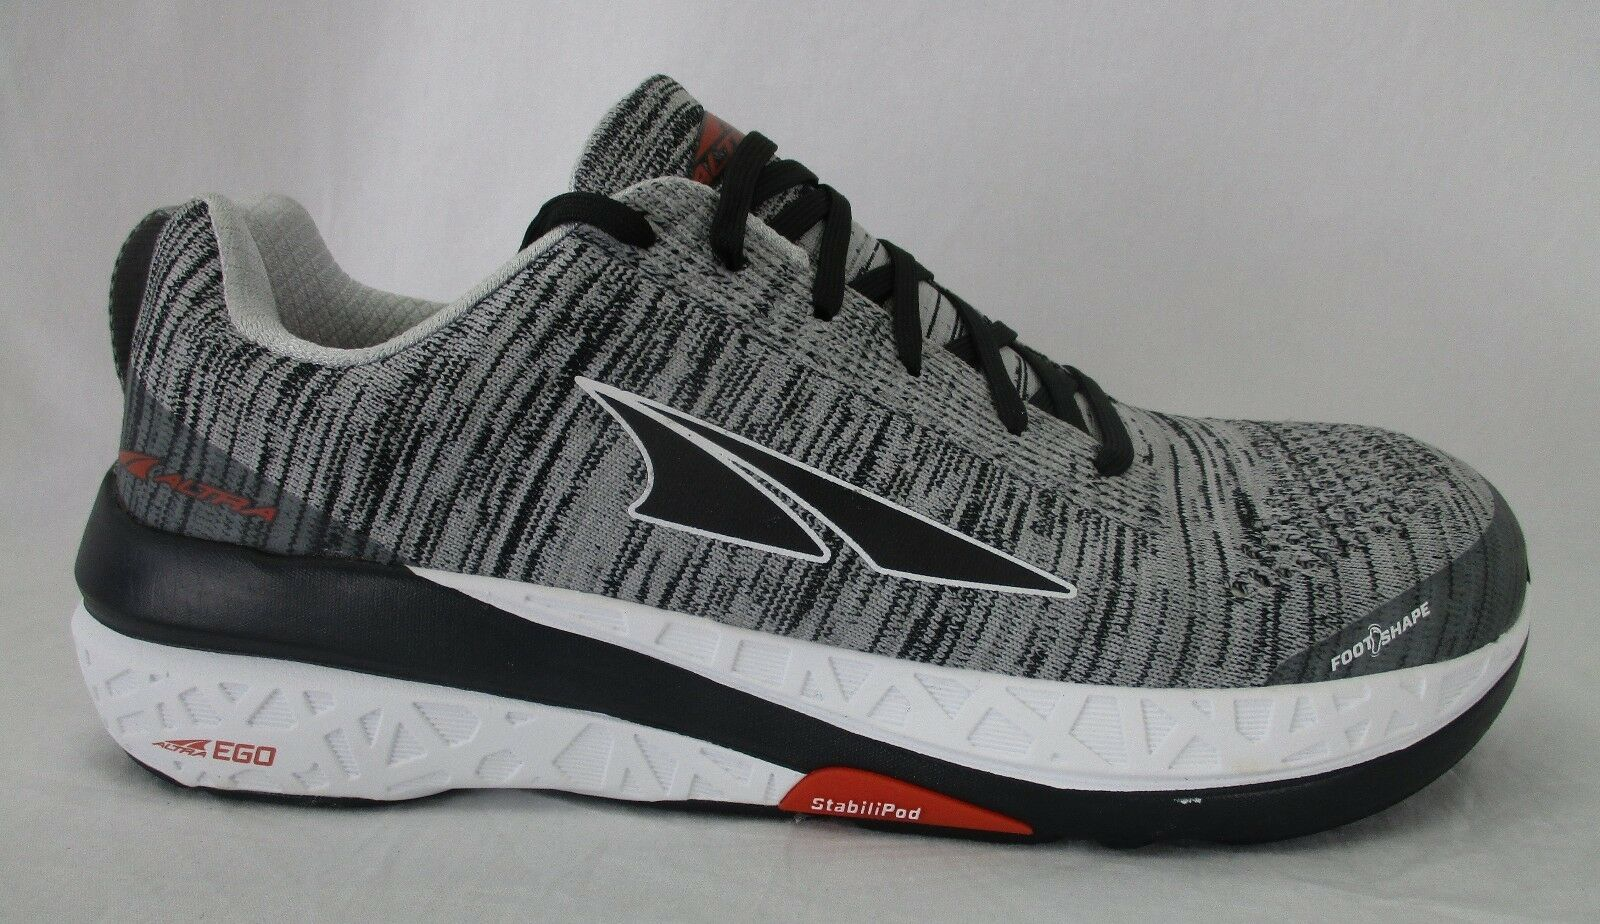 Altra Mens Paradigm 4.0 Shoes AFM1848G-21 Gray/Red Size 11